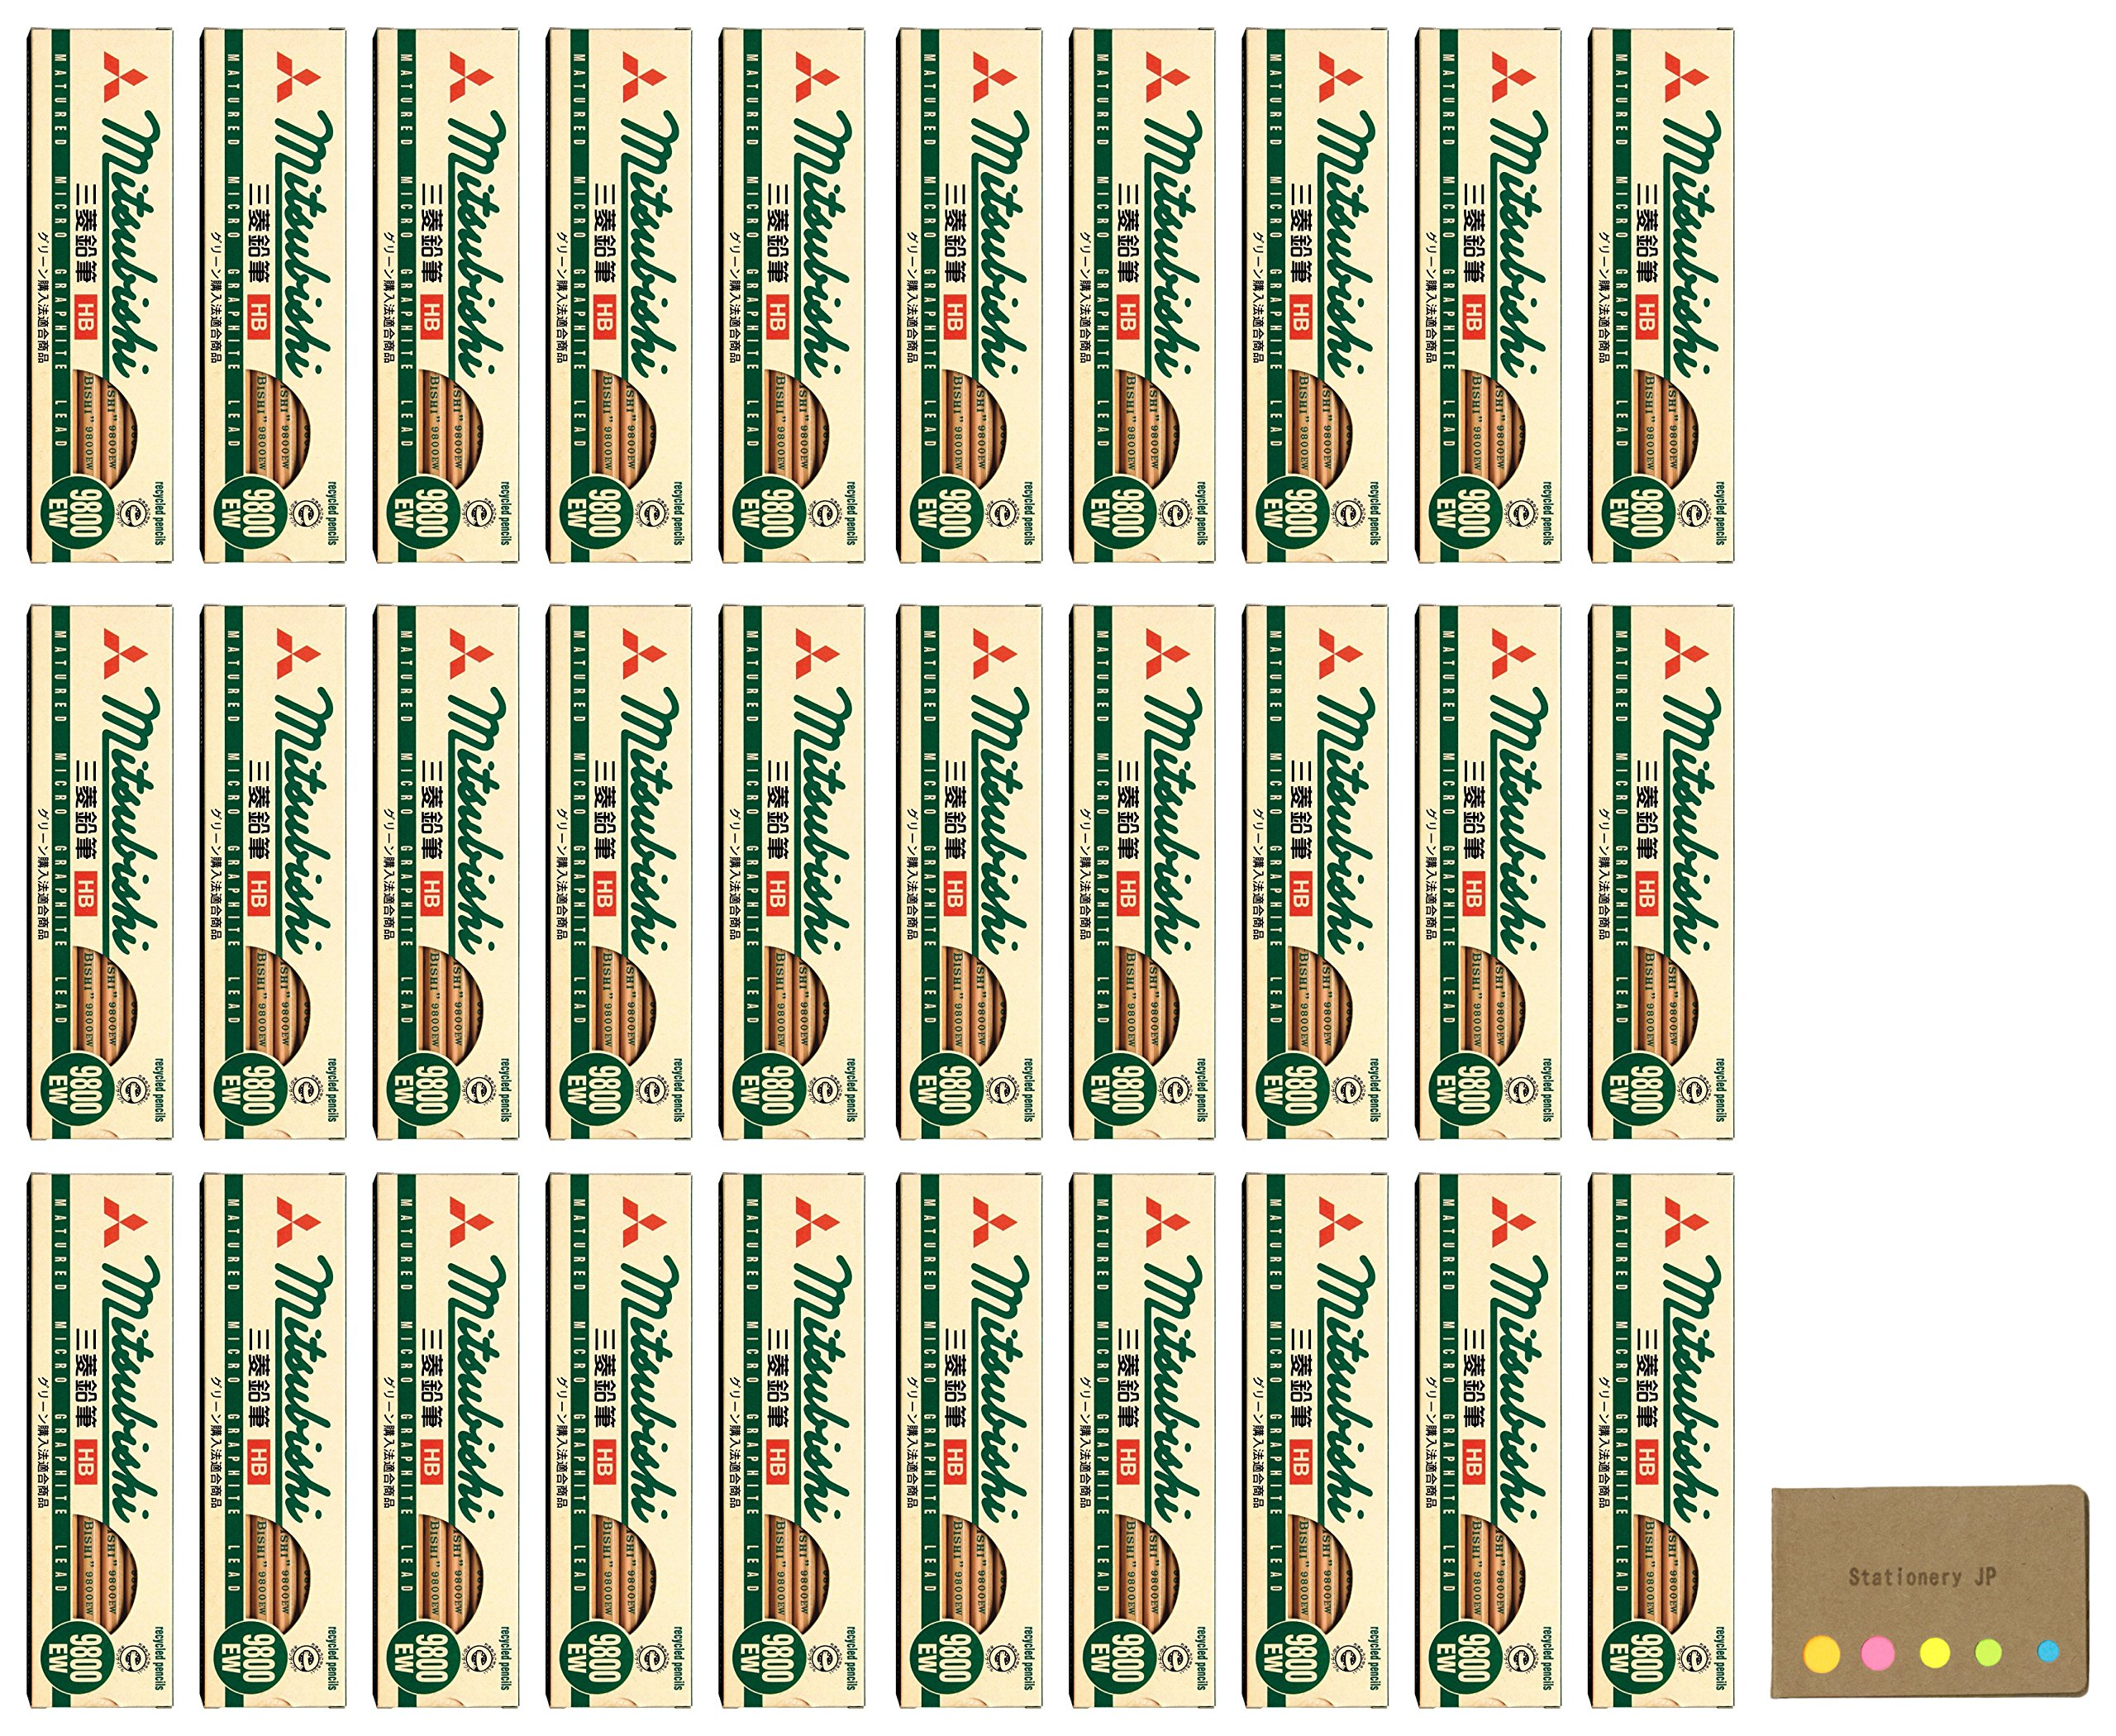 Uni Mitsubishi 9800EW Recycling Pencil, HB, 30-pack/total 360 pcs, Sticky Notes Value Set by Stationery JP (Image #1)